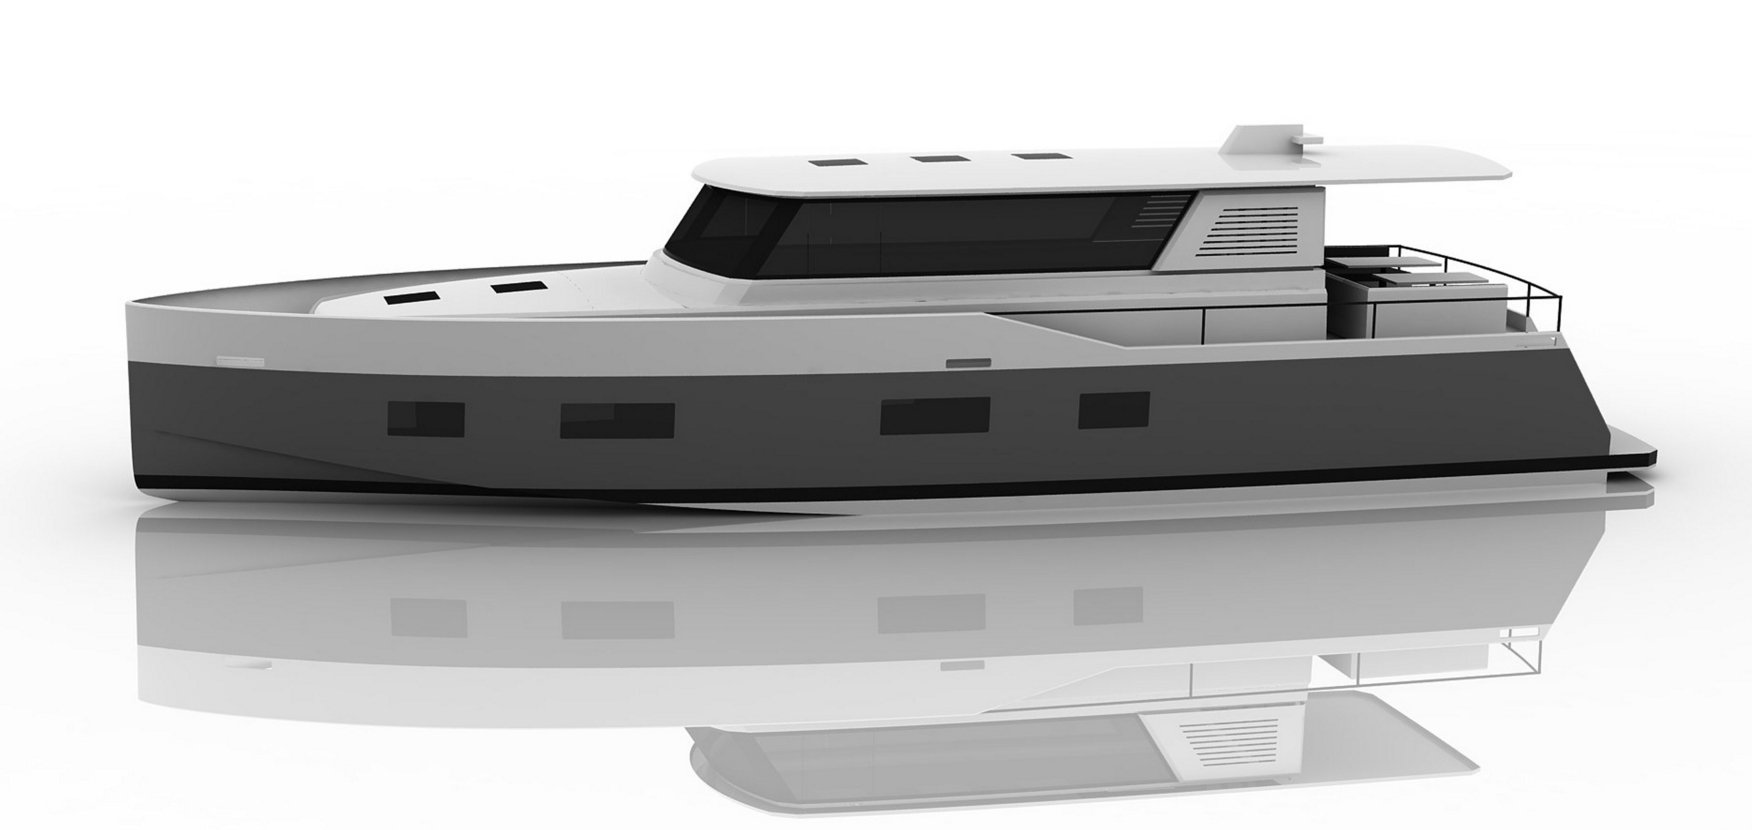 Vismara MY54 side profile rendering